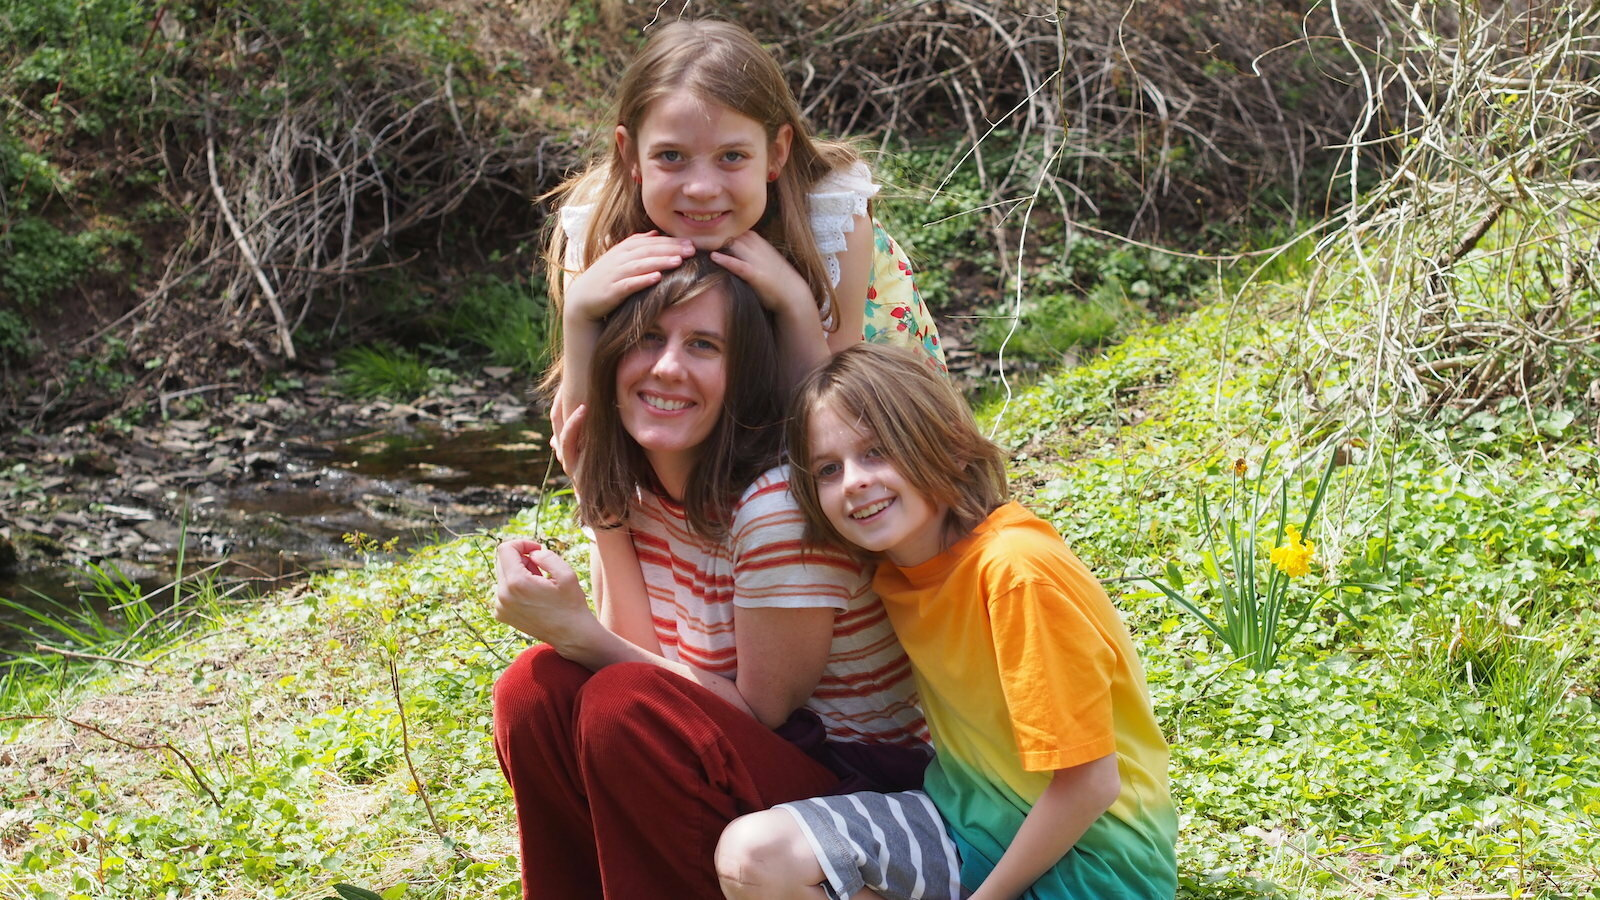 Podcast: Homeschooling During COVID-19 with Debra Liese on Teachers in America